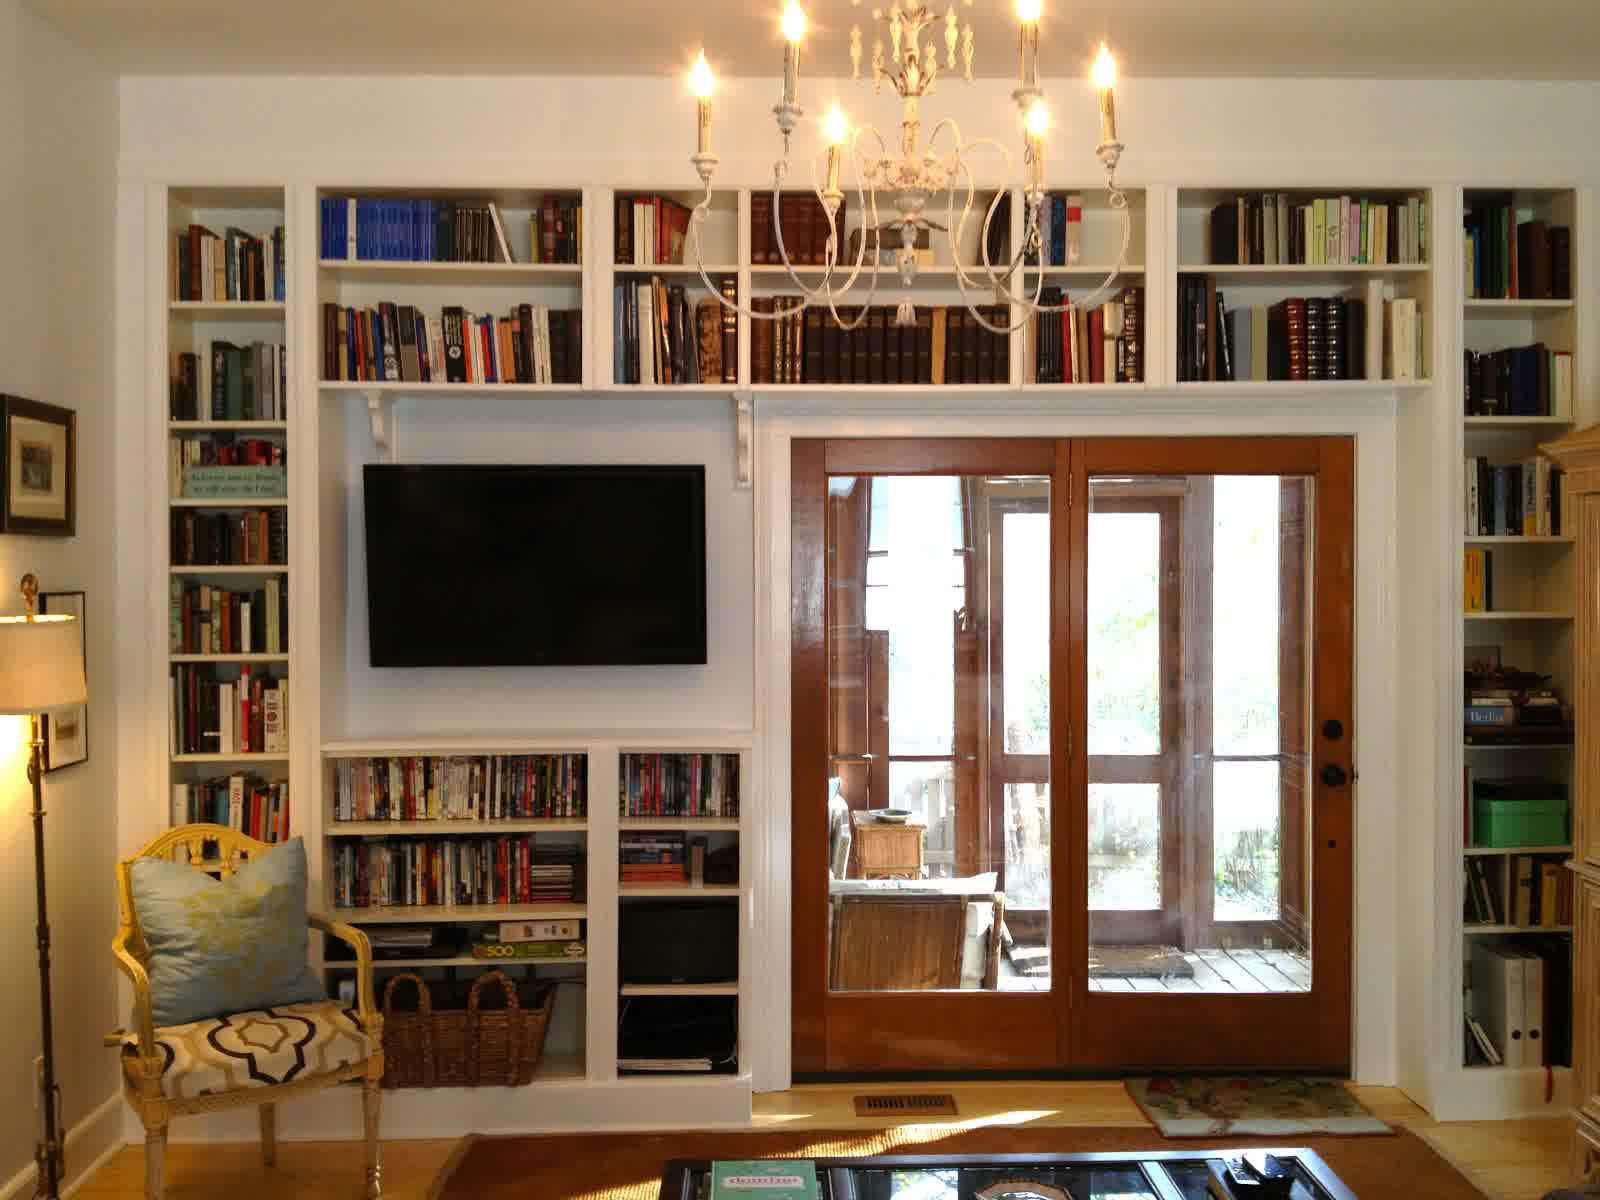 Library-Dominated-Room2-1 20+ Best Living Room Design Ideas in 2020